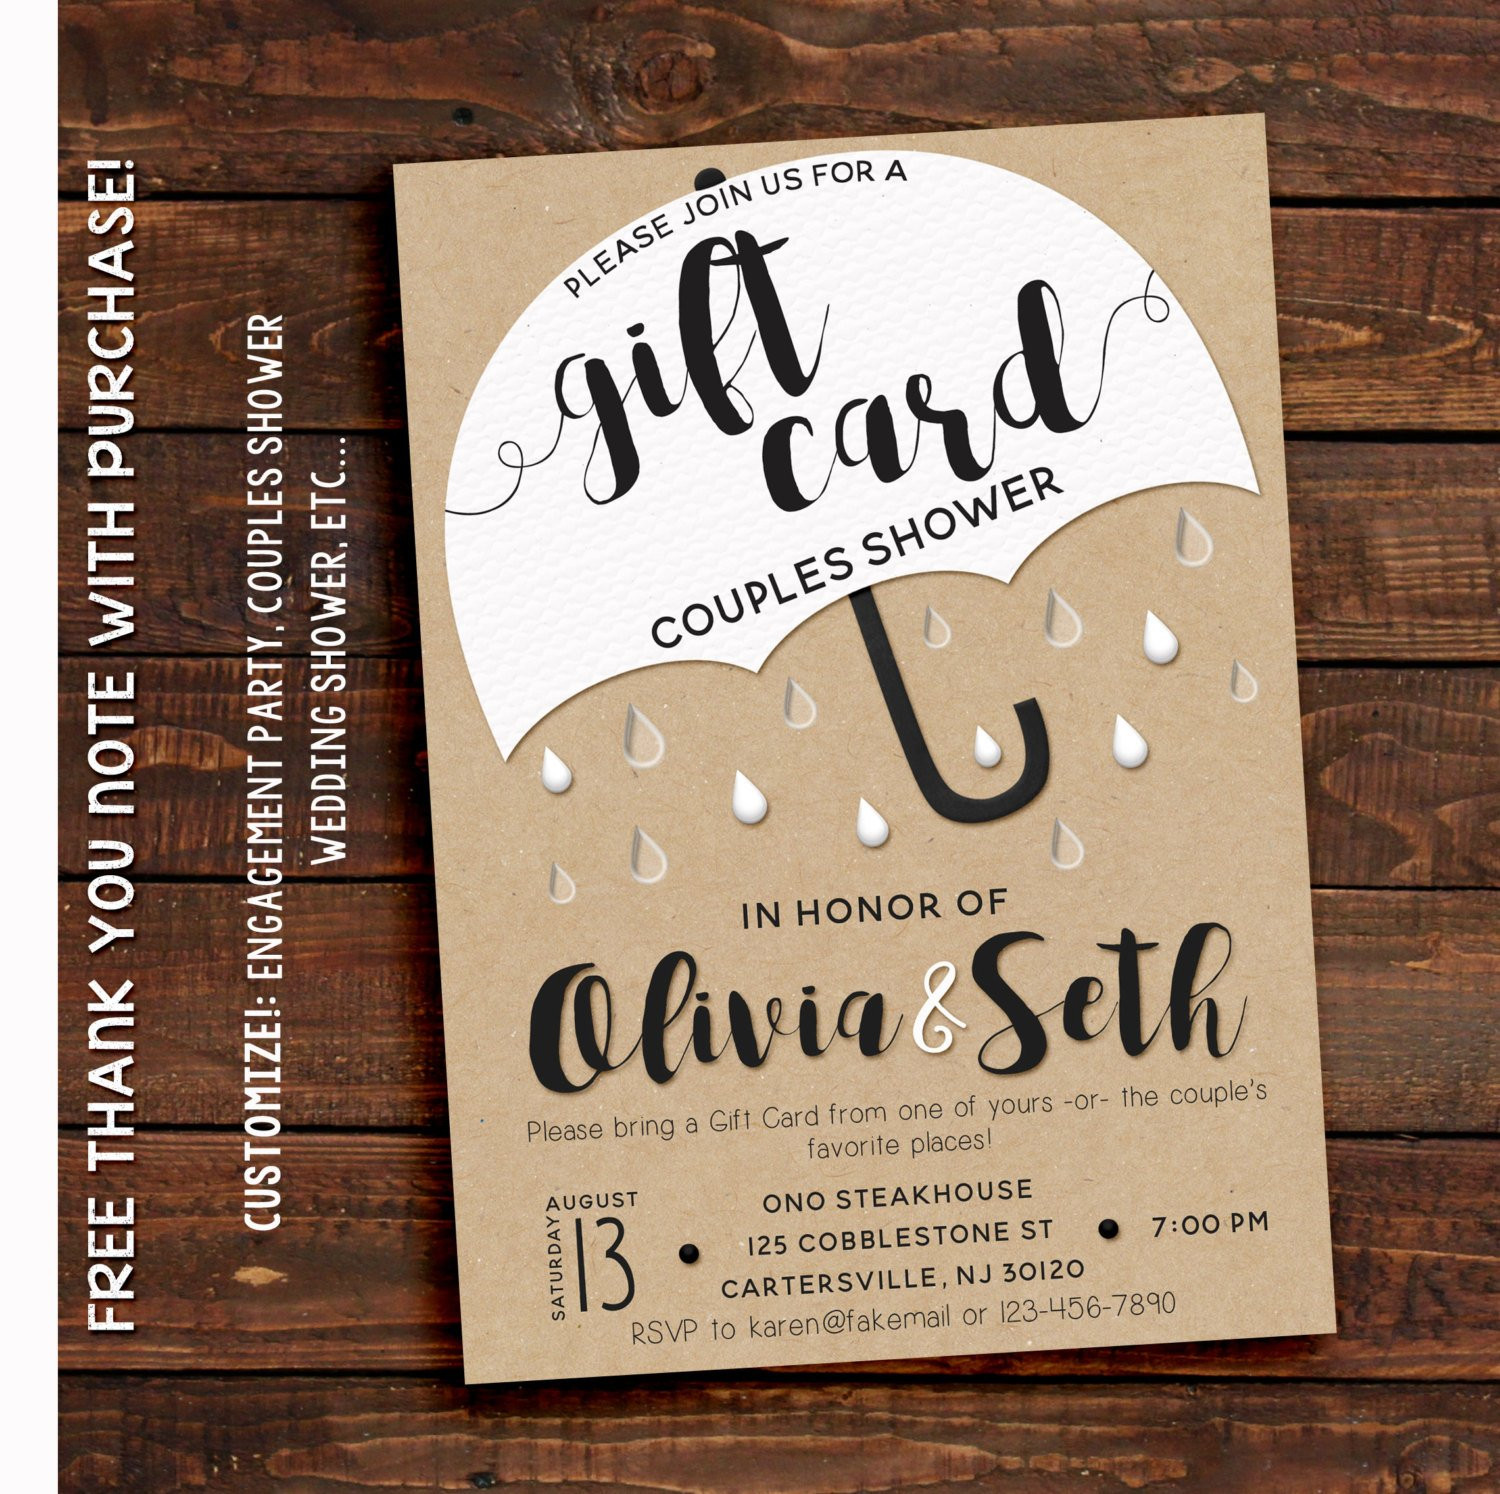 Best ideas about Couple Shower Gift Ideas . Save or Pin Couples Shower Invitation Couples Shower Invitation Now.